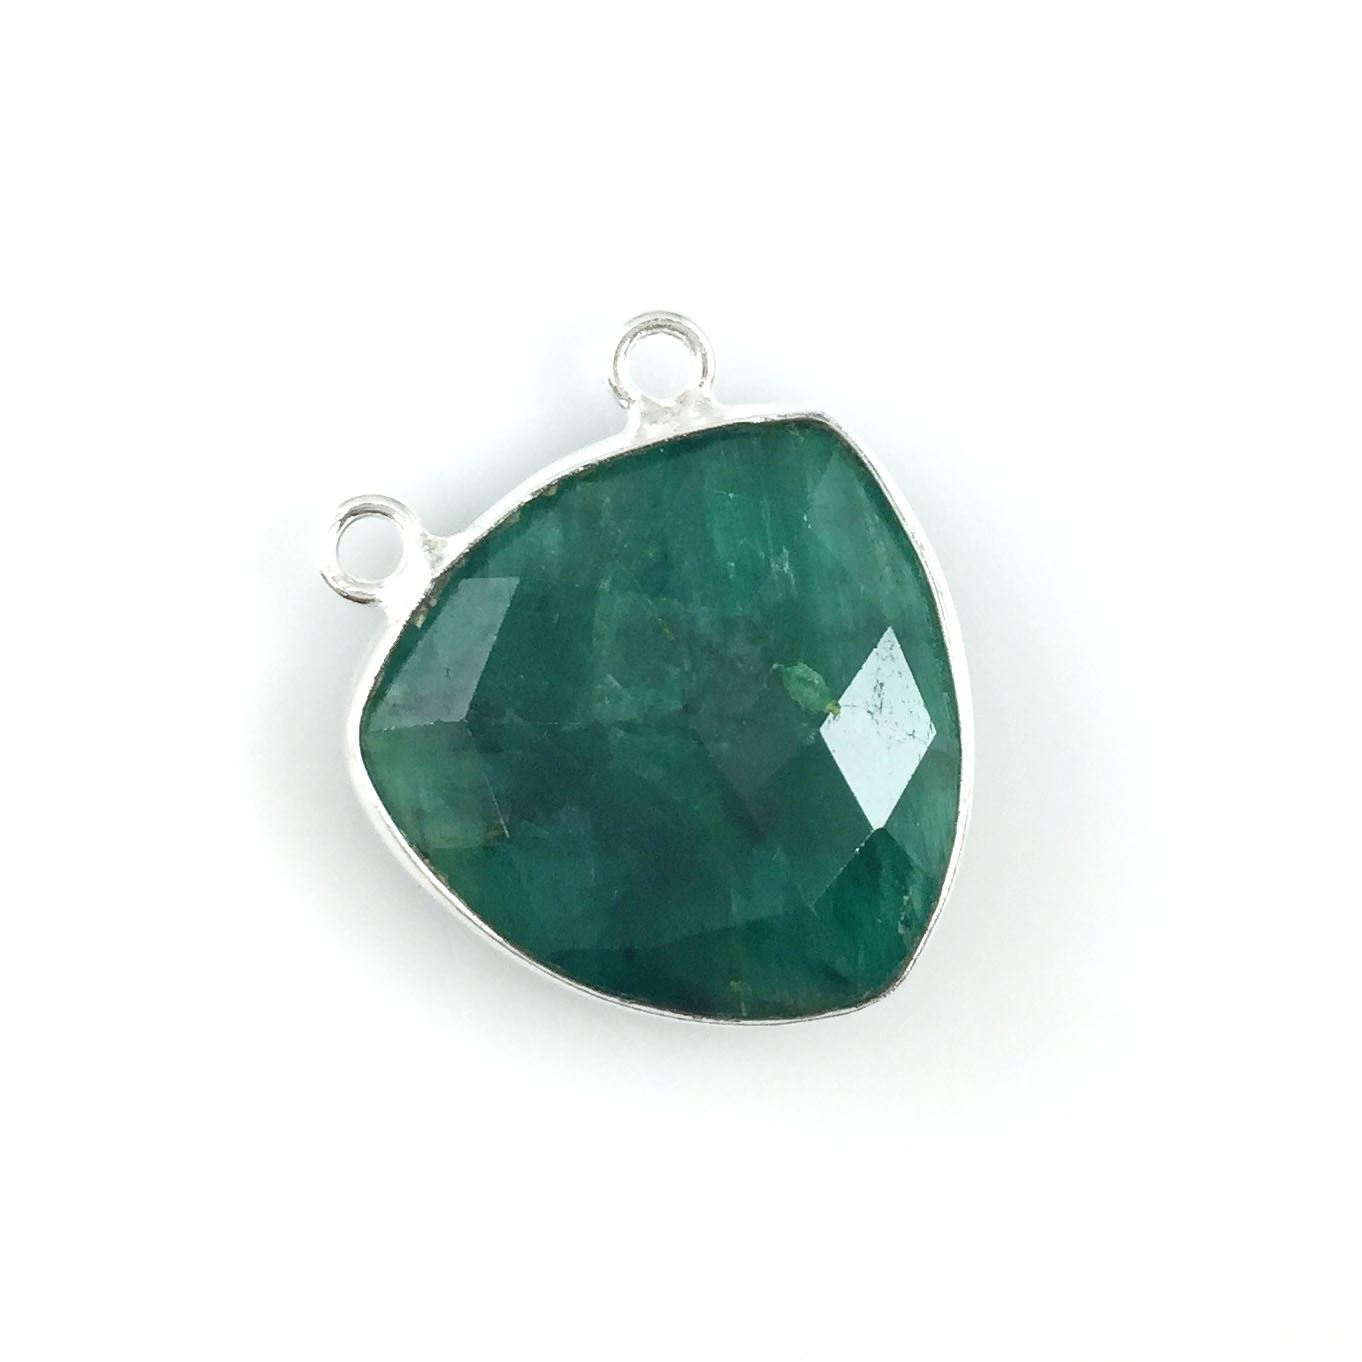 Bezel Gemstone Connector Pendant - Emerald Dyed - Sterling Silver - Large Trillion Shaped Faceted - 18 mm - 1 piece